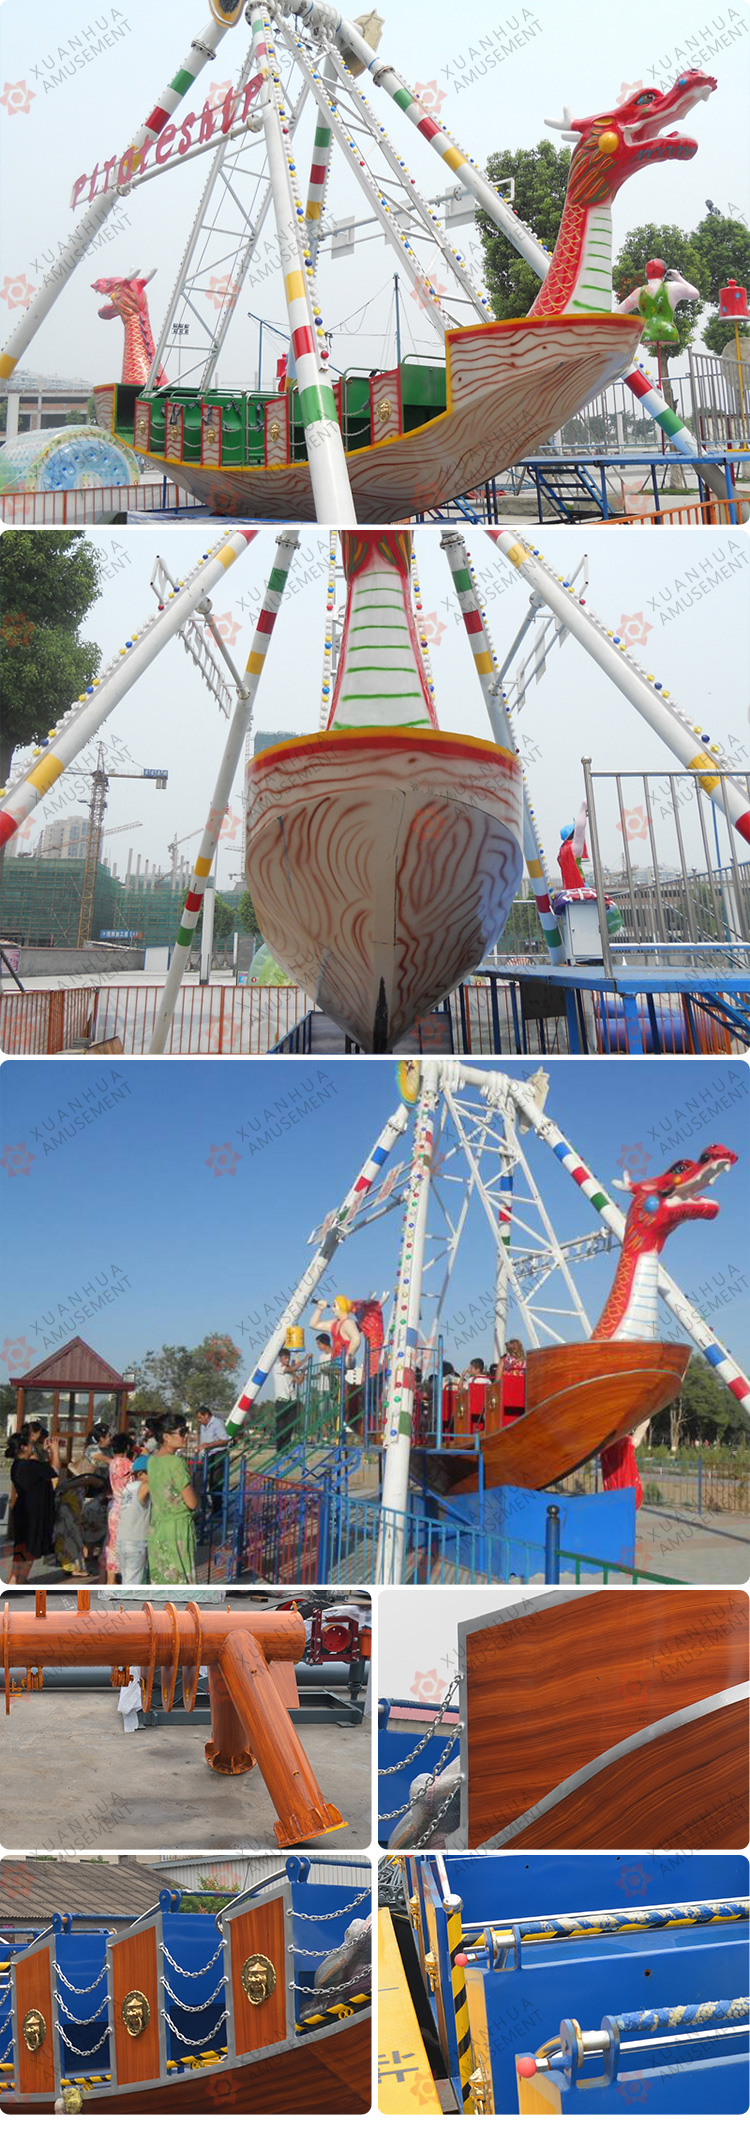 Thrill theme park carnival kiddie fairground indoor kids amusement funfair rides for sale